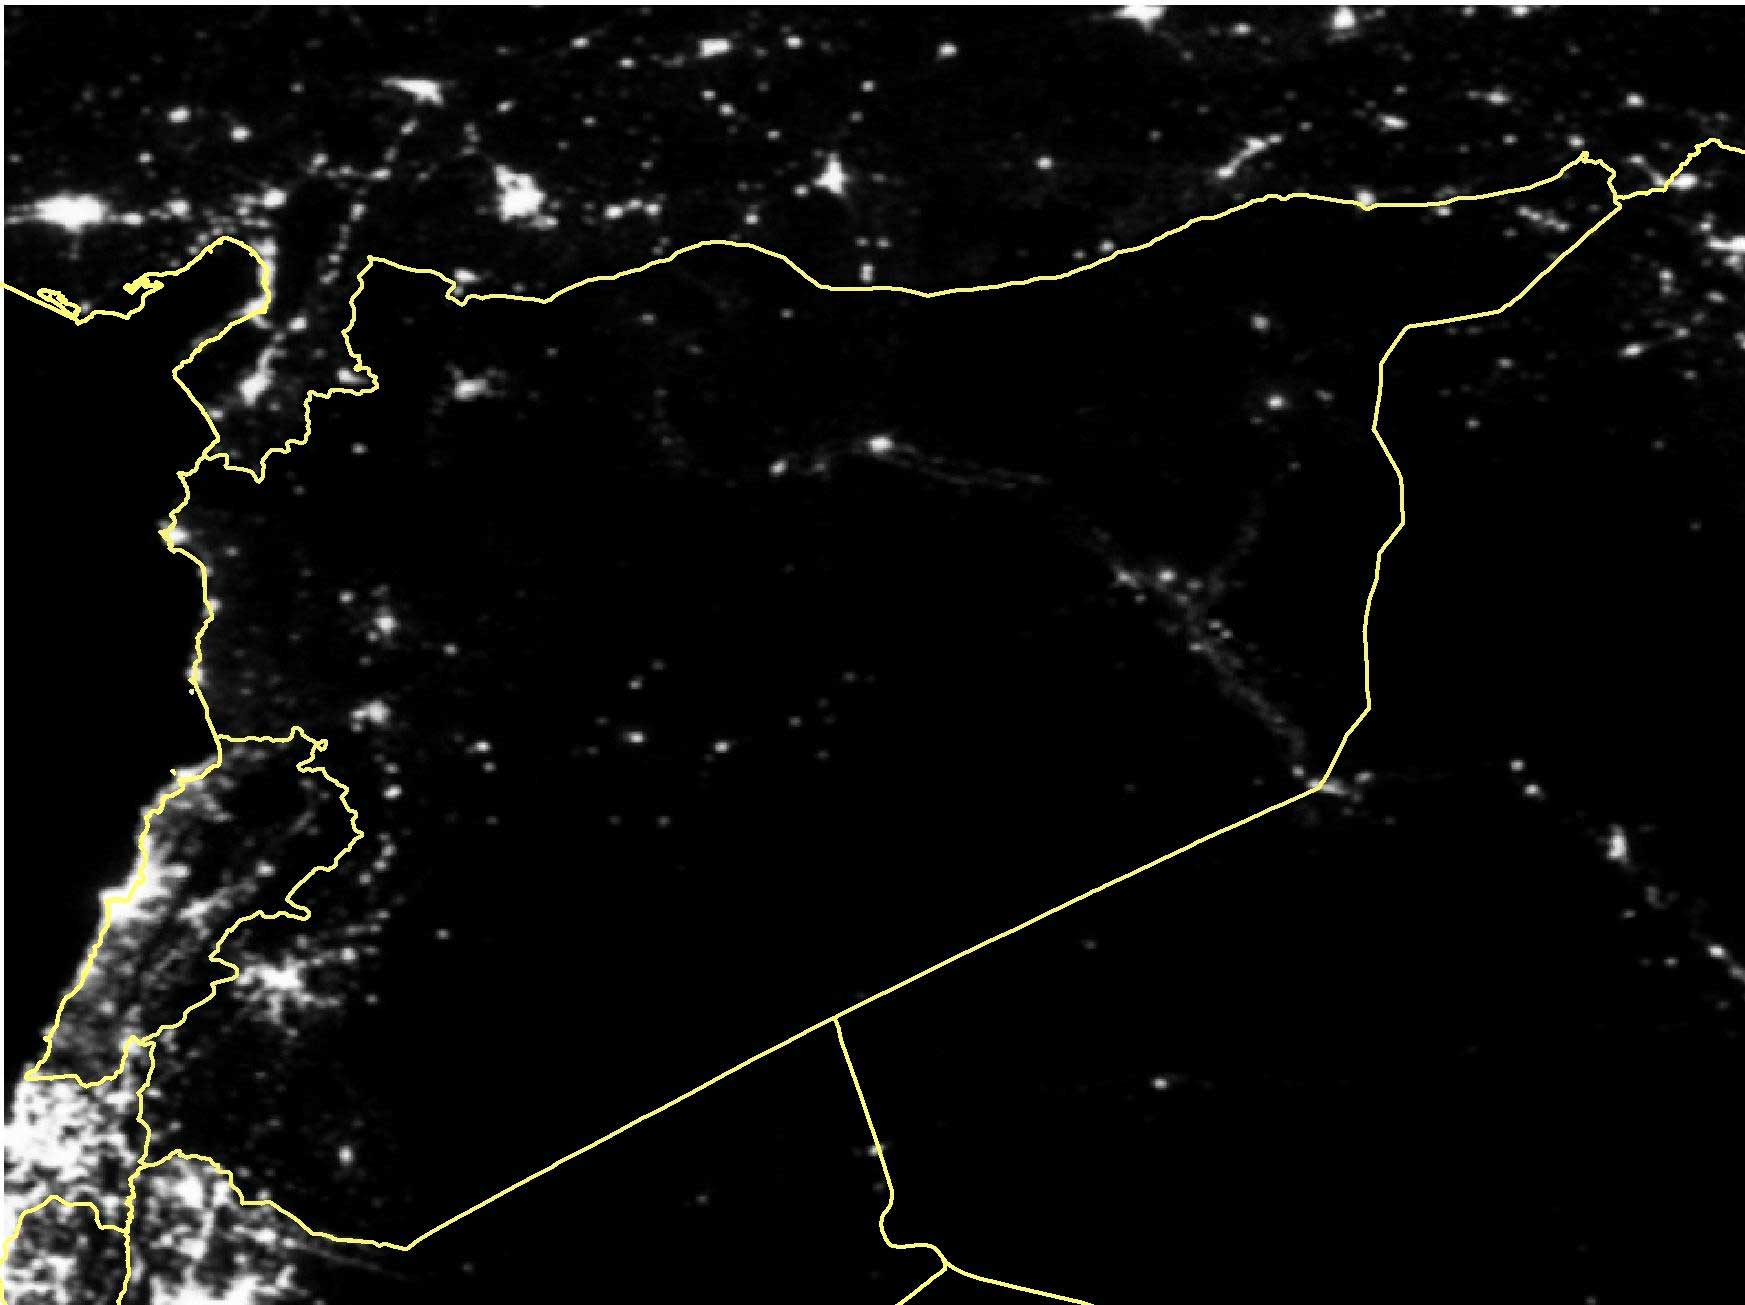 Satellite imagery of Syria in March 2014.